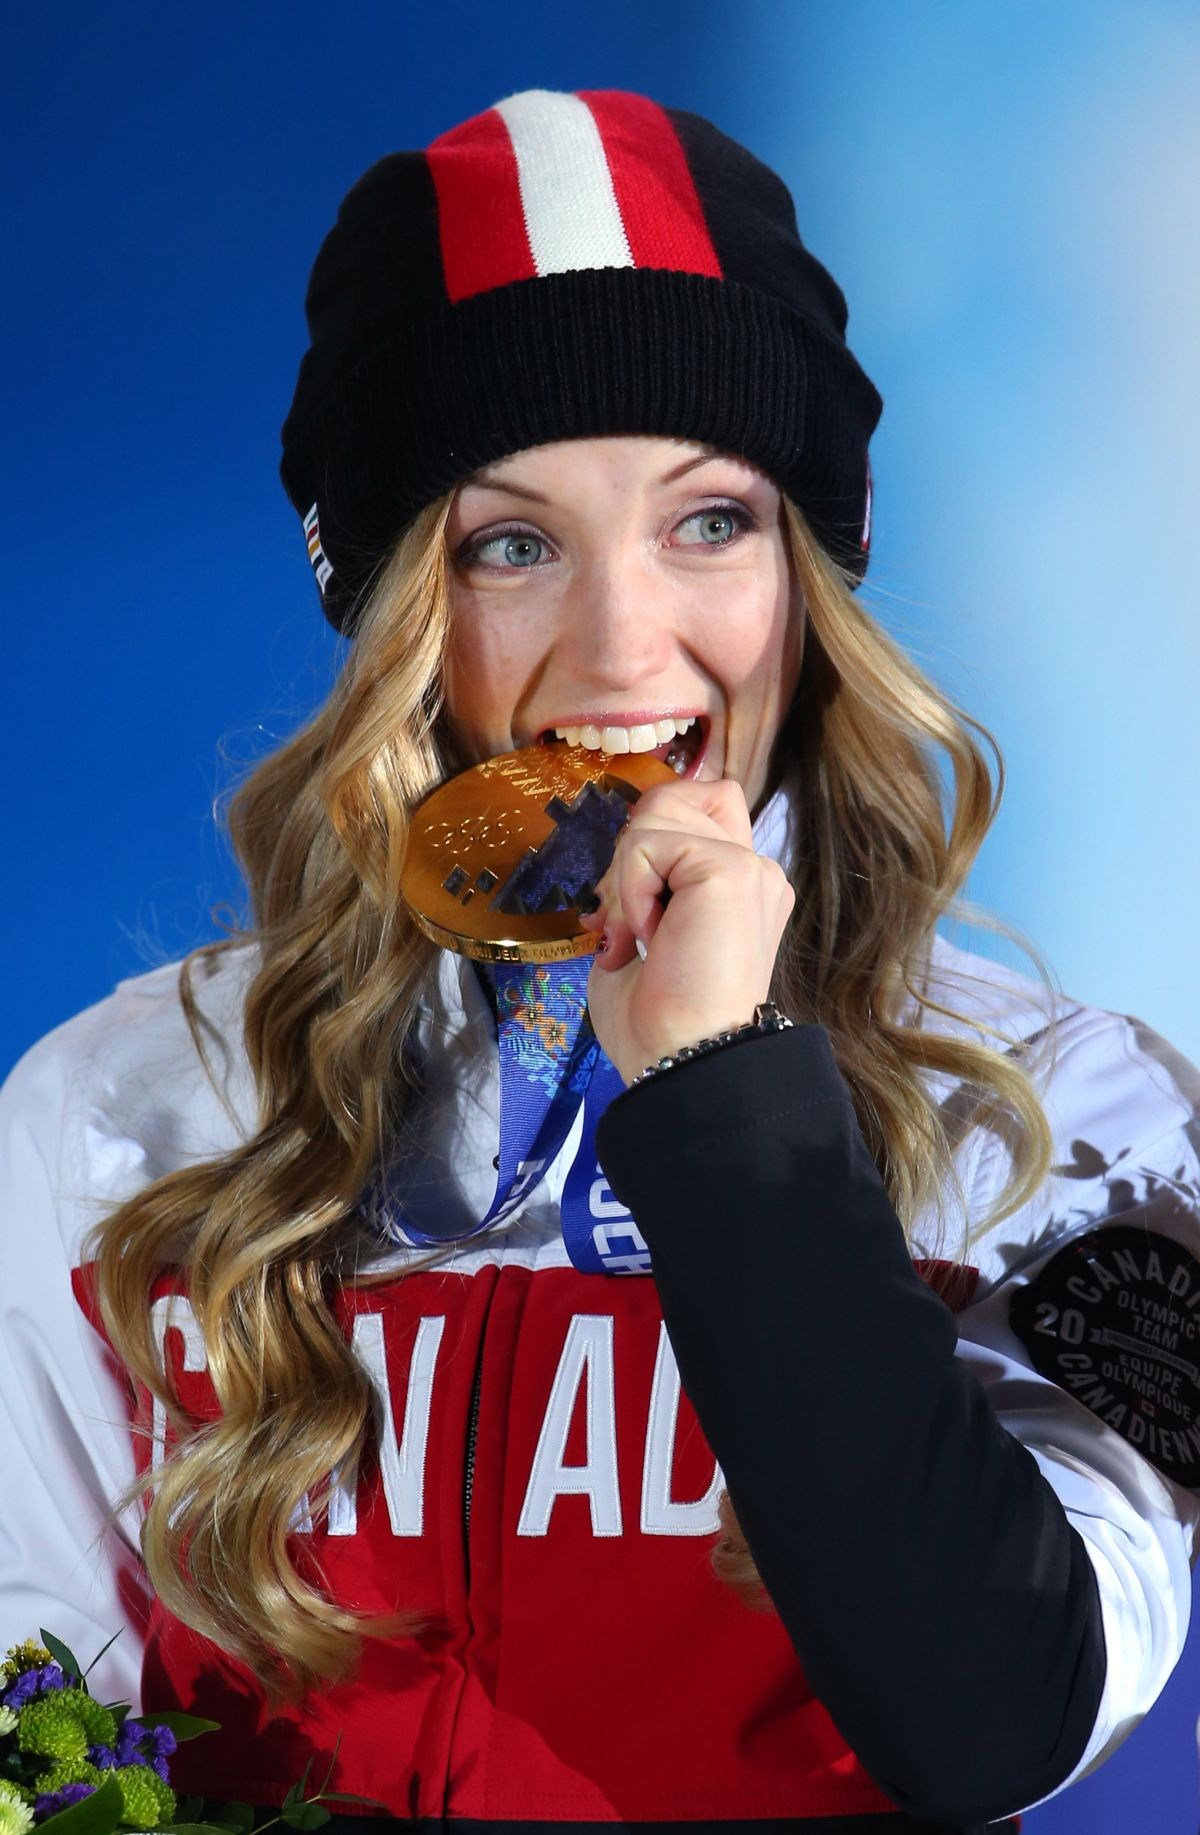 Justine Dufour-Lapointe At 2014 Sochi Winter Olympics ... Victoria Beckham